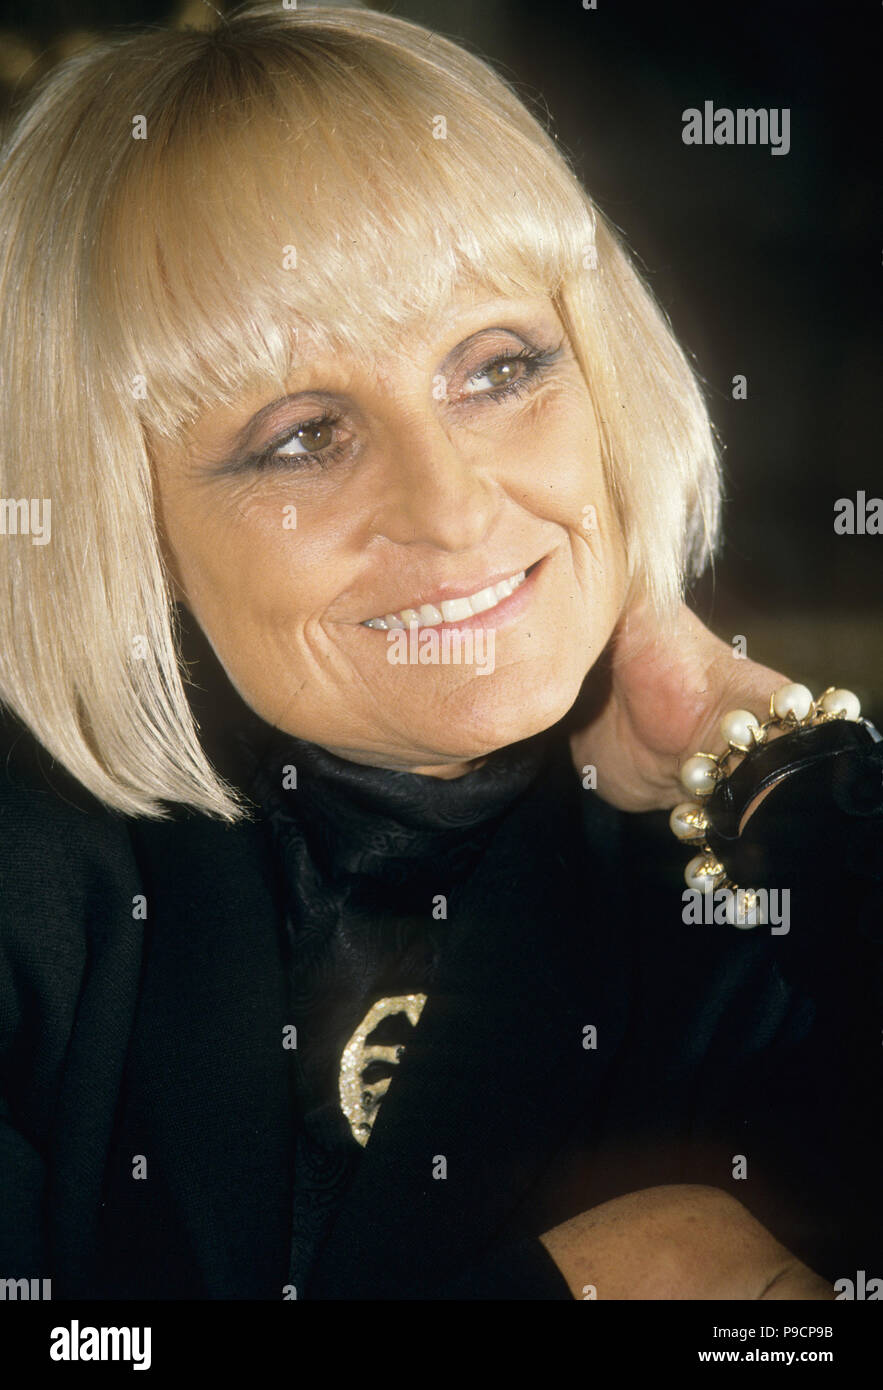 BARBARA HULANICKI Polish fashion designer and founder of Biba, about 1990. - Stock Image